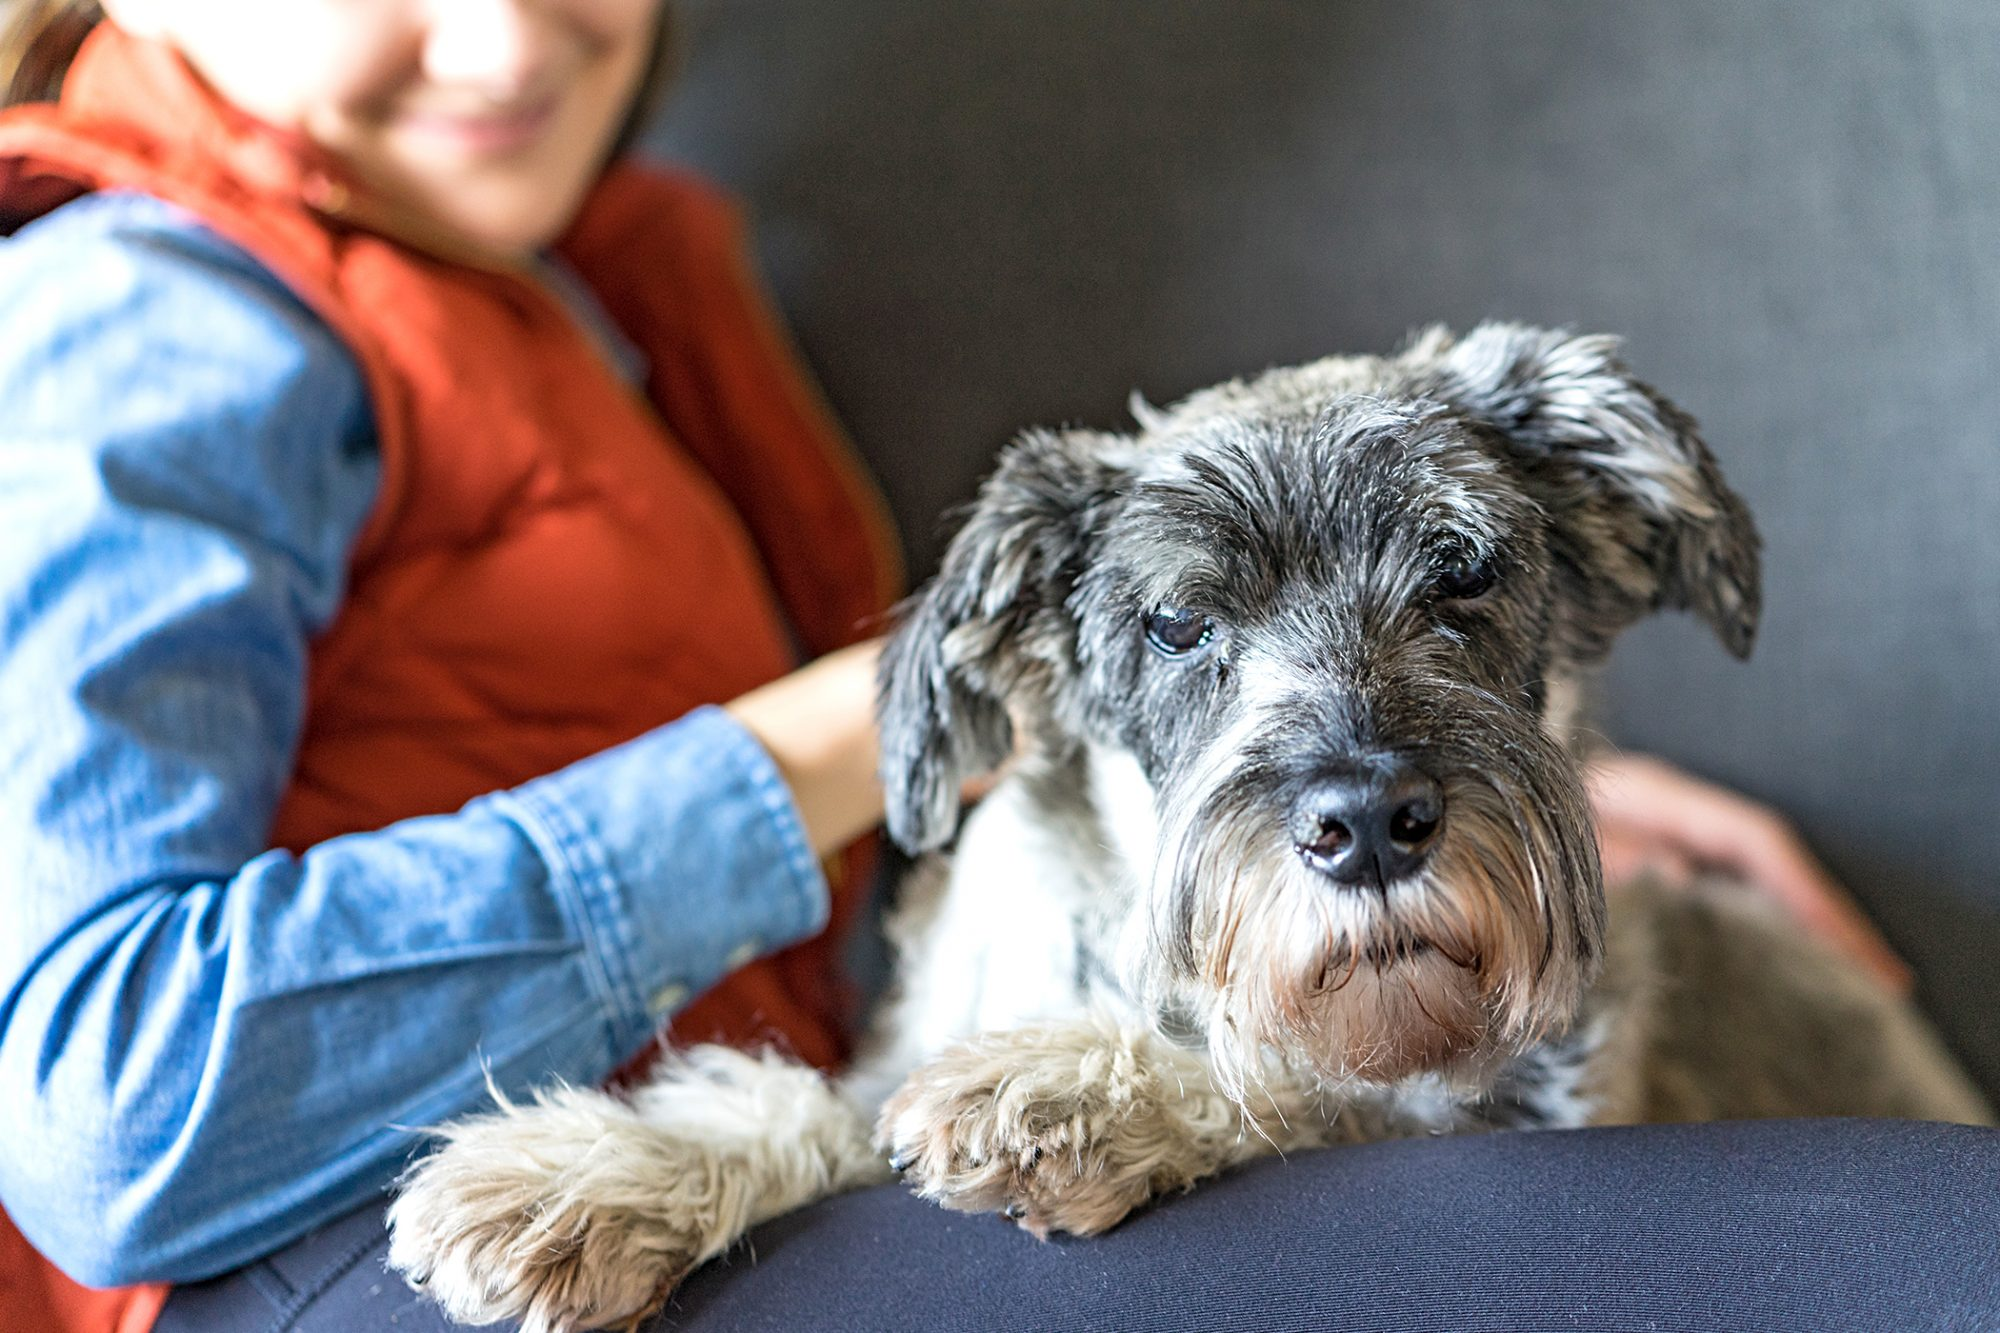 miniature schnauzer sitting in their owners lap looking at the camera